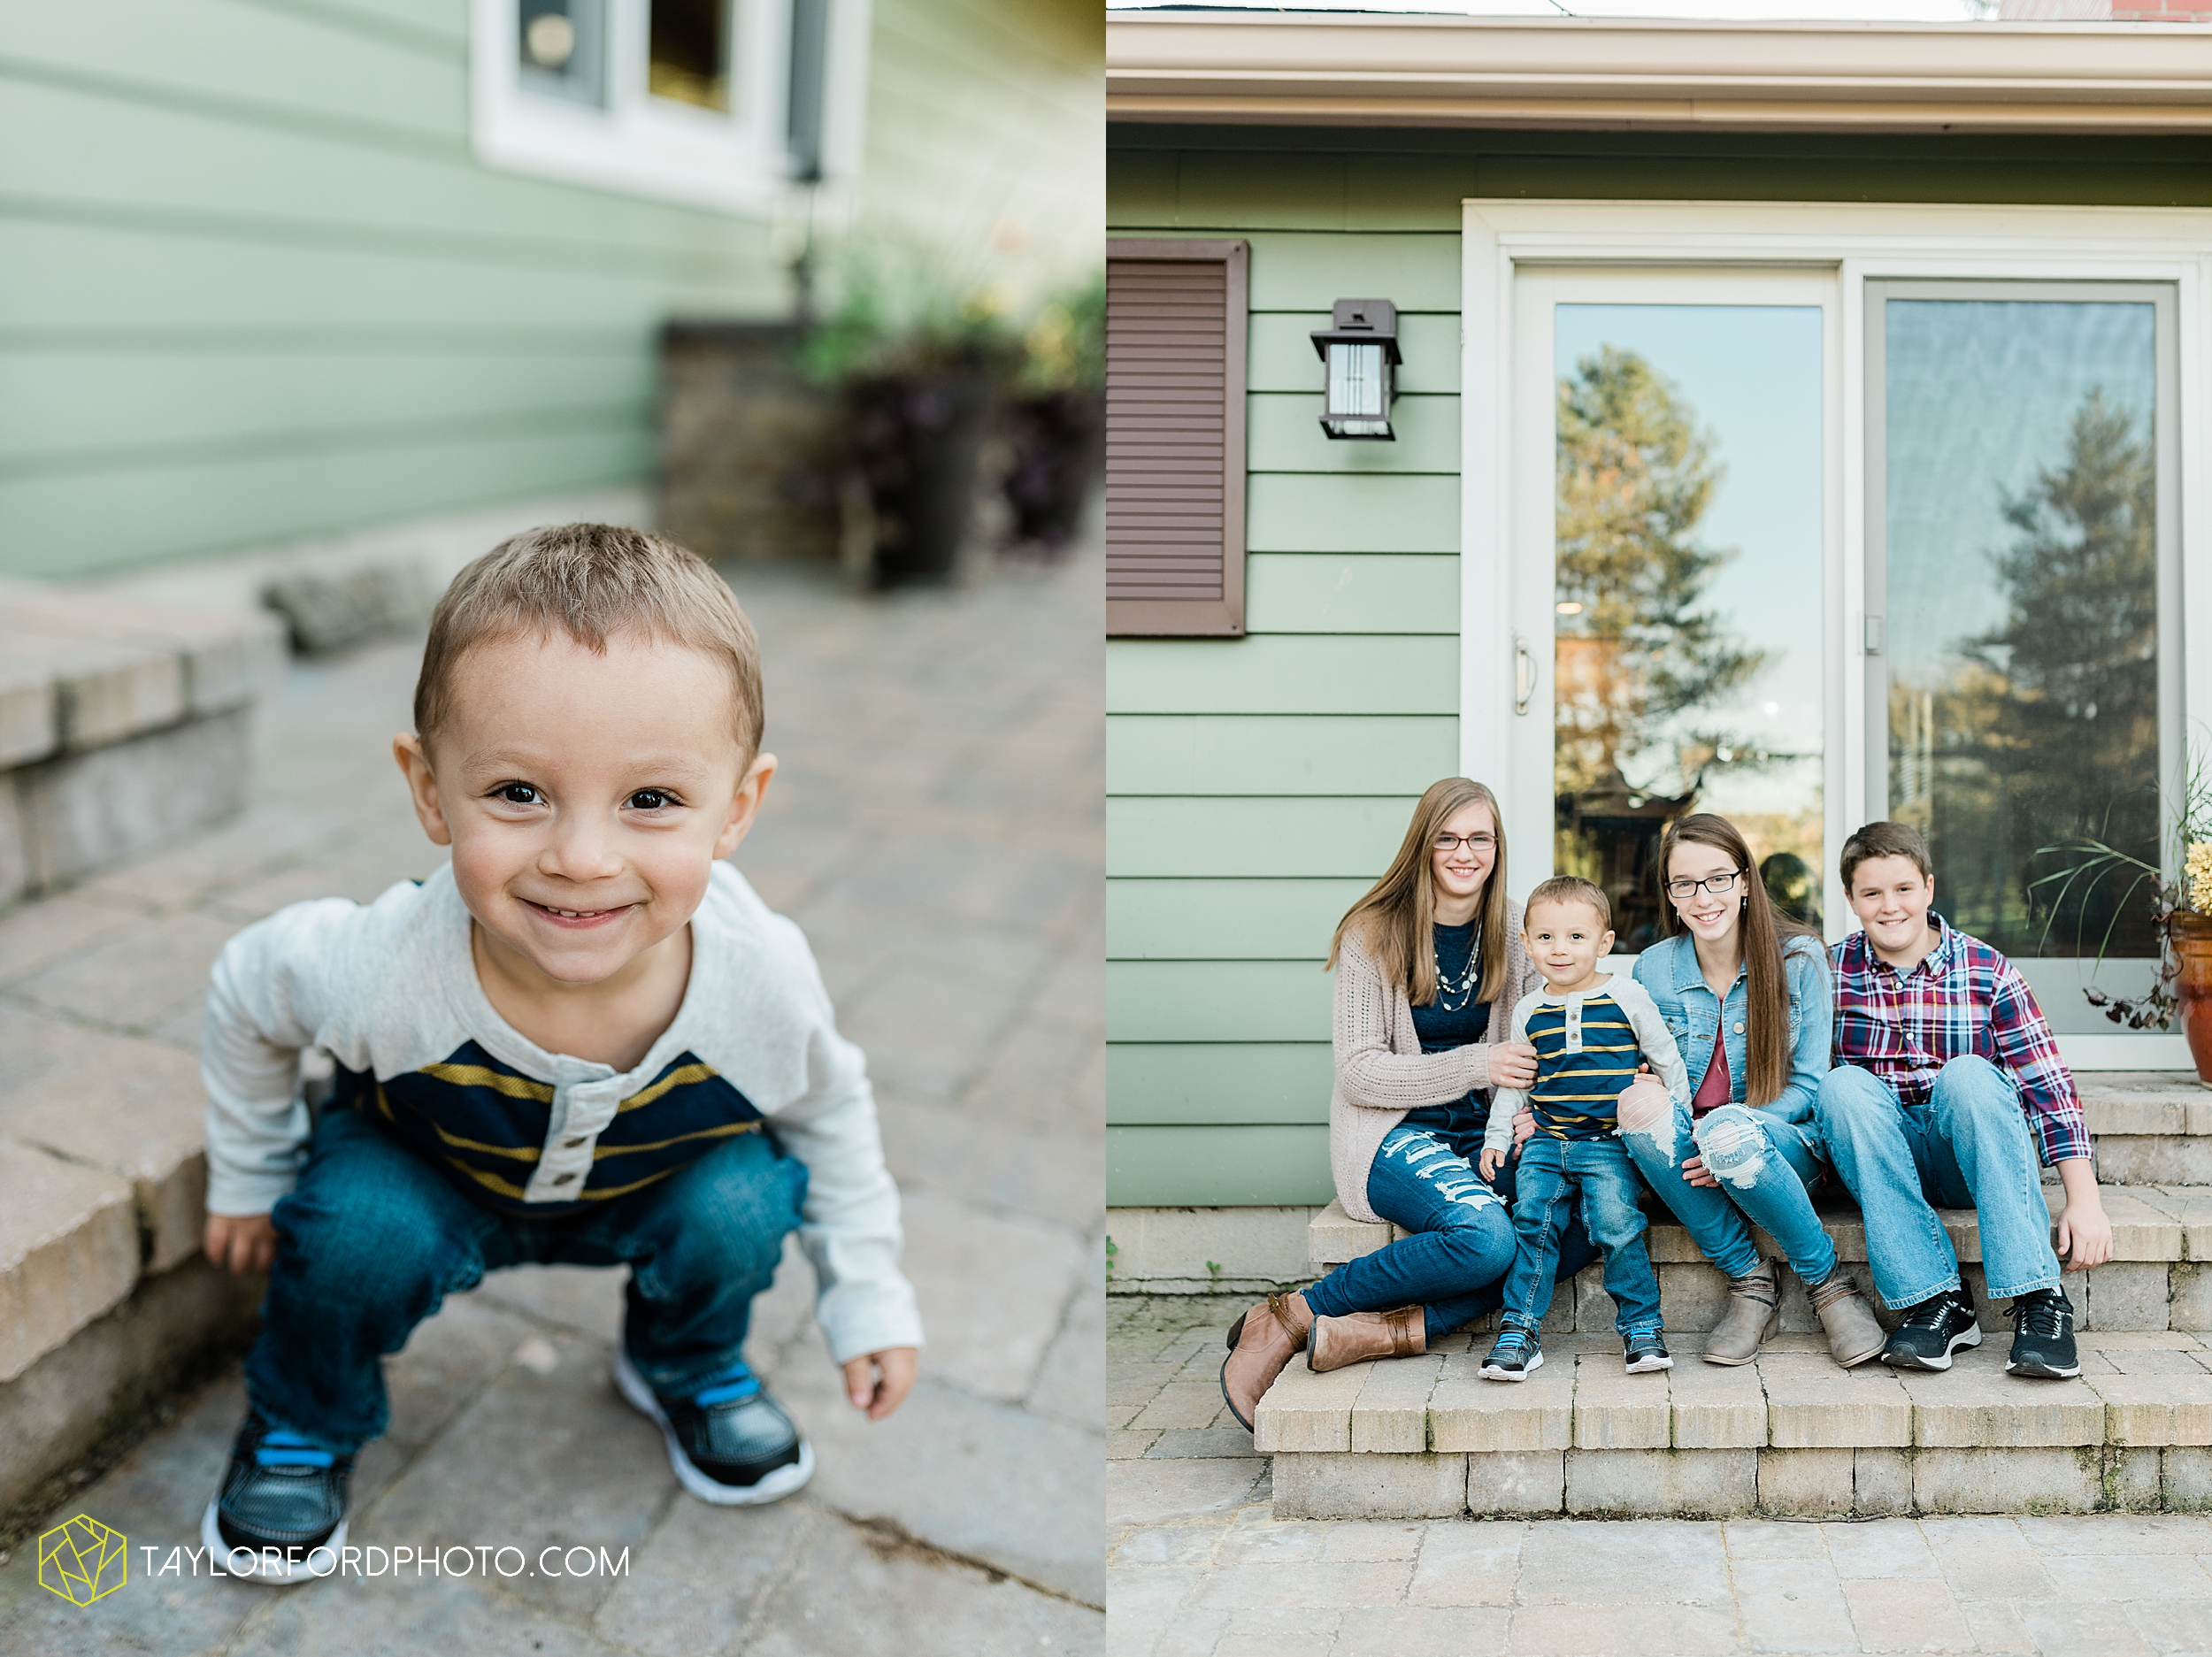 northwest-van-wert-ohio-backyard-at-home-outdoor-natural-light-stollerfamily-photographer-taylor-ford-photography_1232.jpg